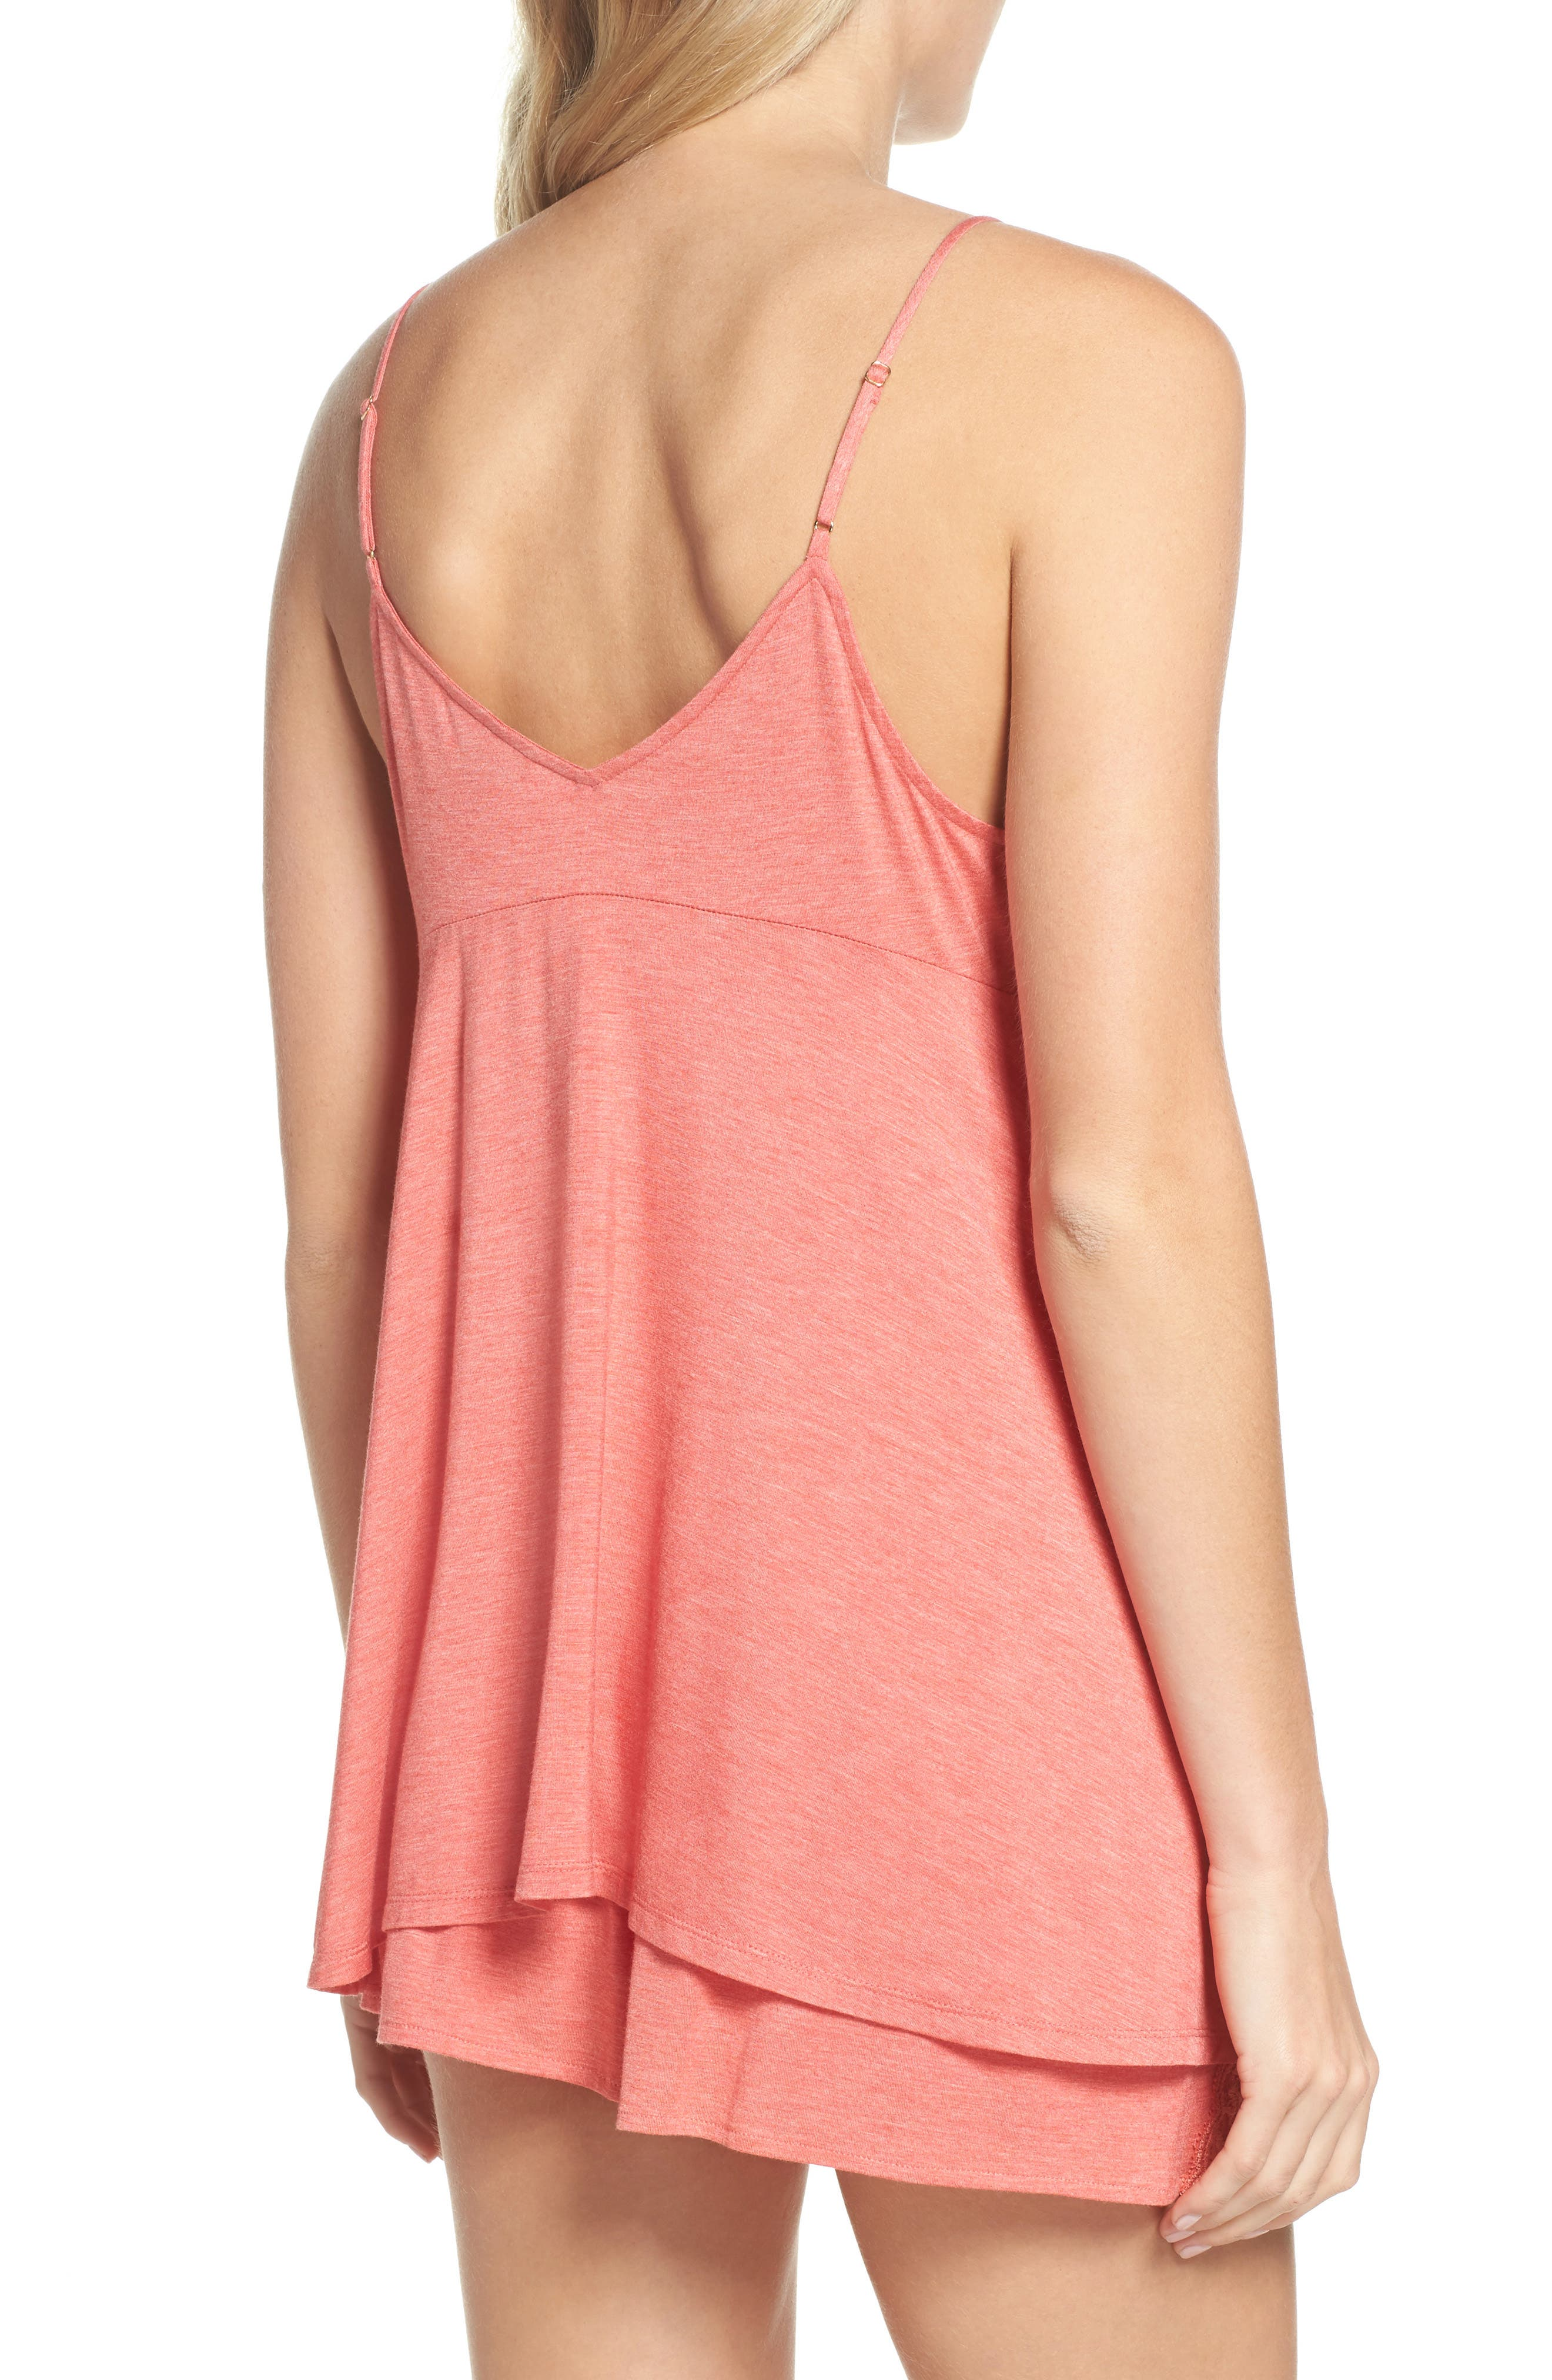 Feathers Essential Camisole,                             Alternate thumbnail 4, color,